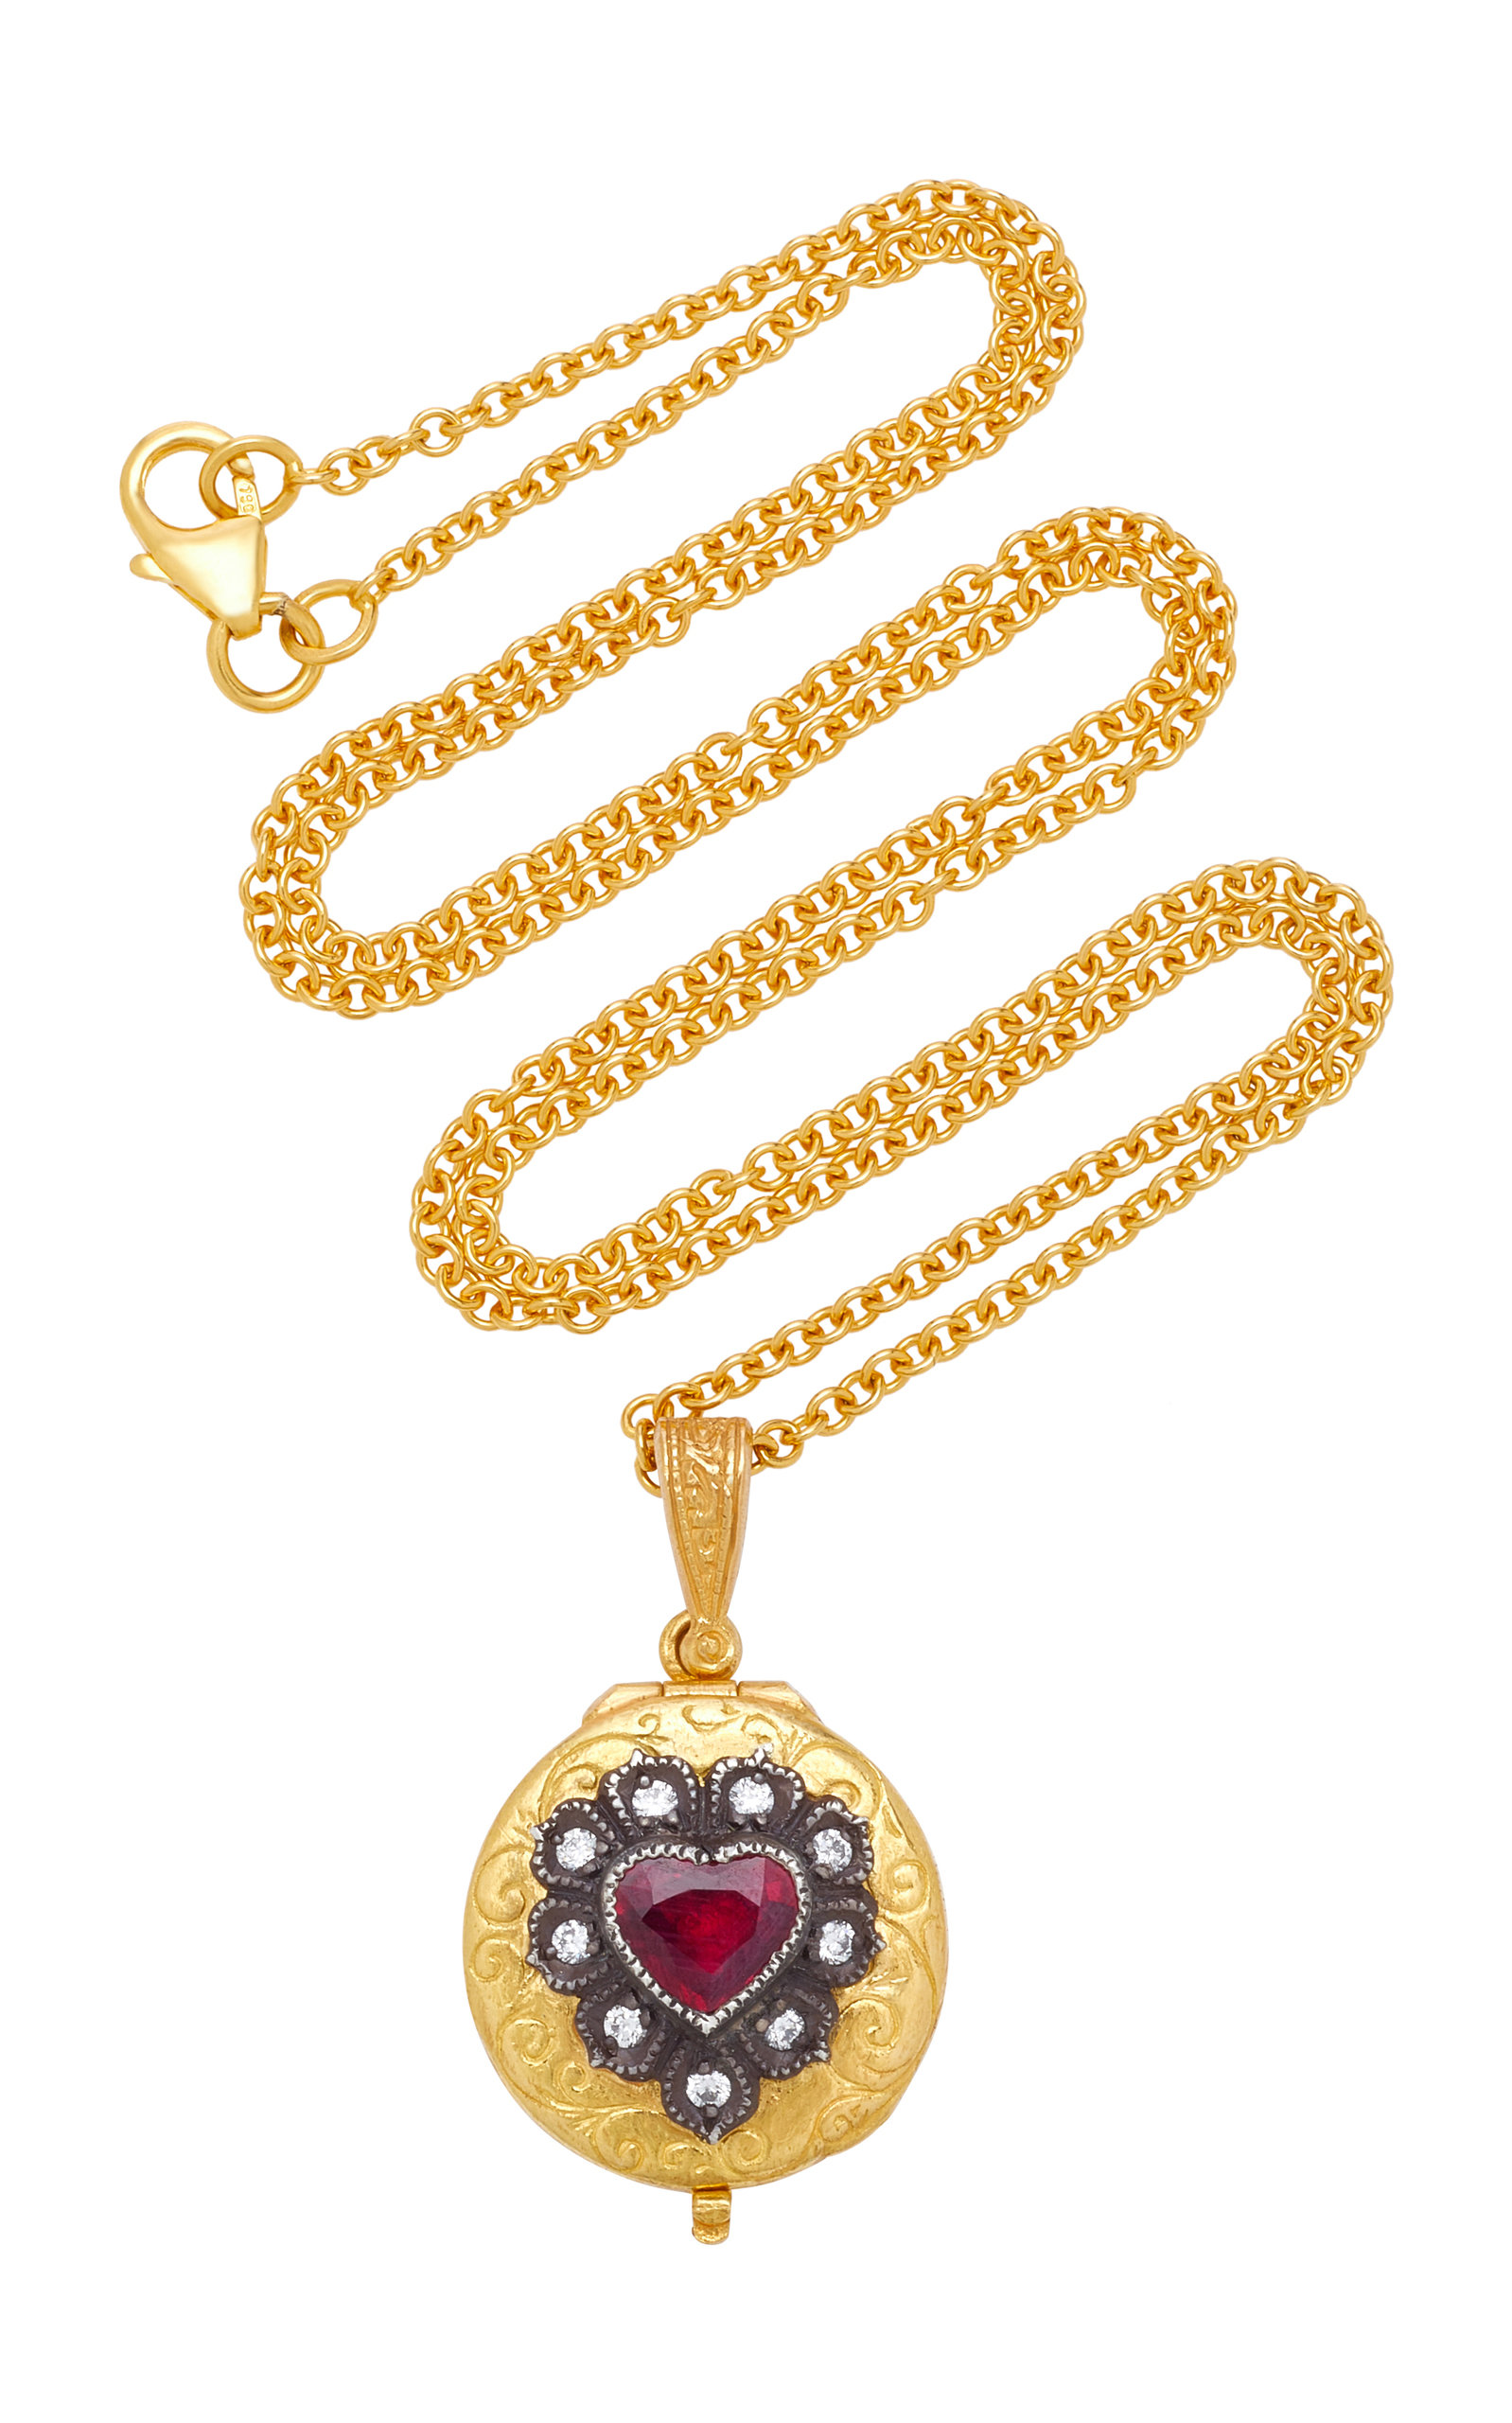 ARMAN SARKISYAN 22K Gold Ruby And Diamond Necklace in Red